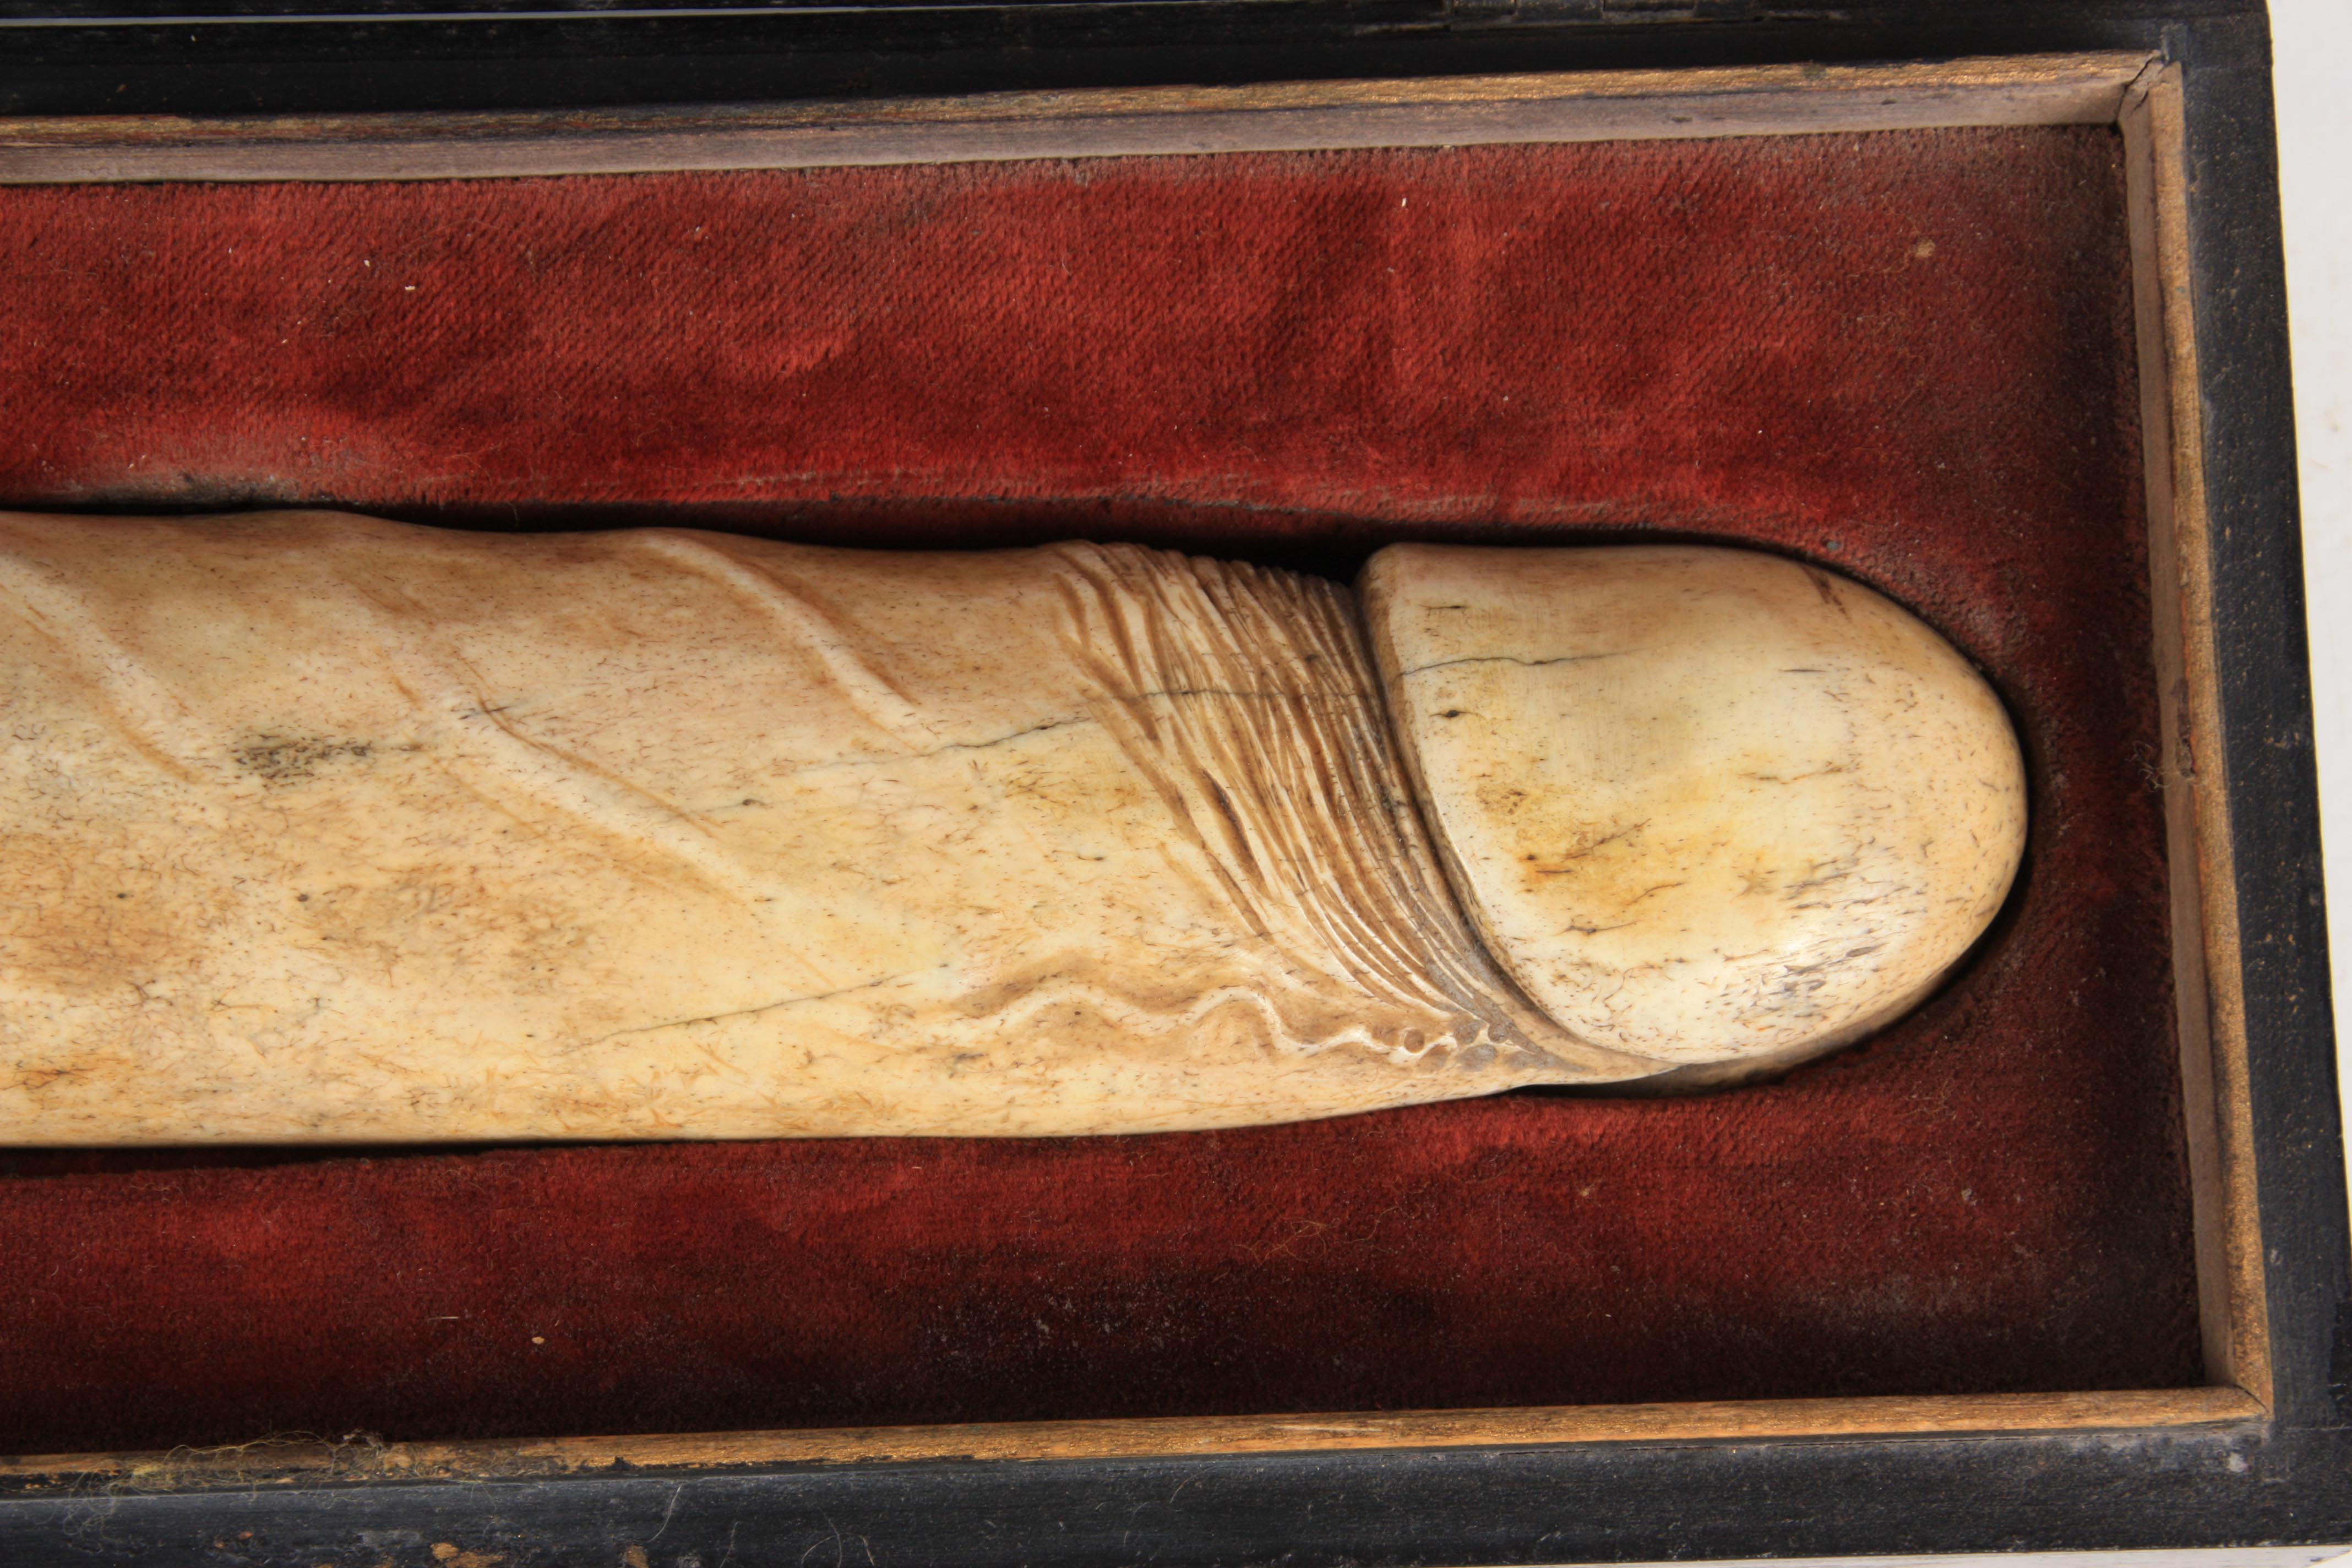 A RARE 19TH CENTURY CARVED BONE EROTIC SCULPTURE modelled as a phallus with turned wood handle to - Image 12 of 16